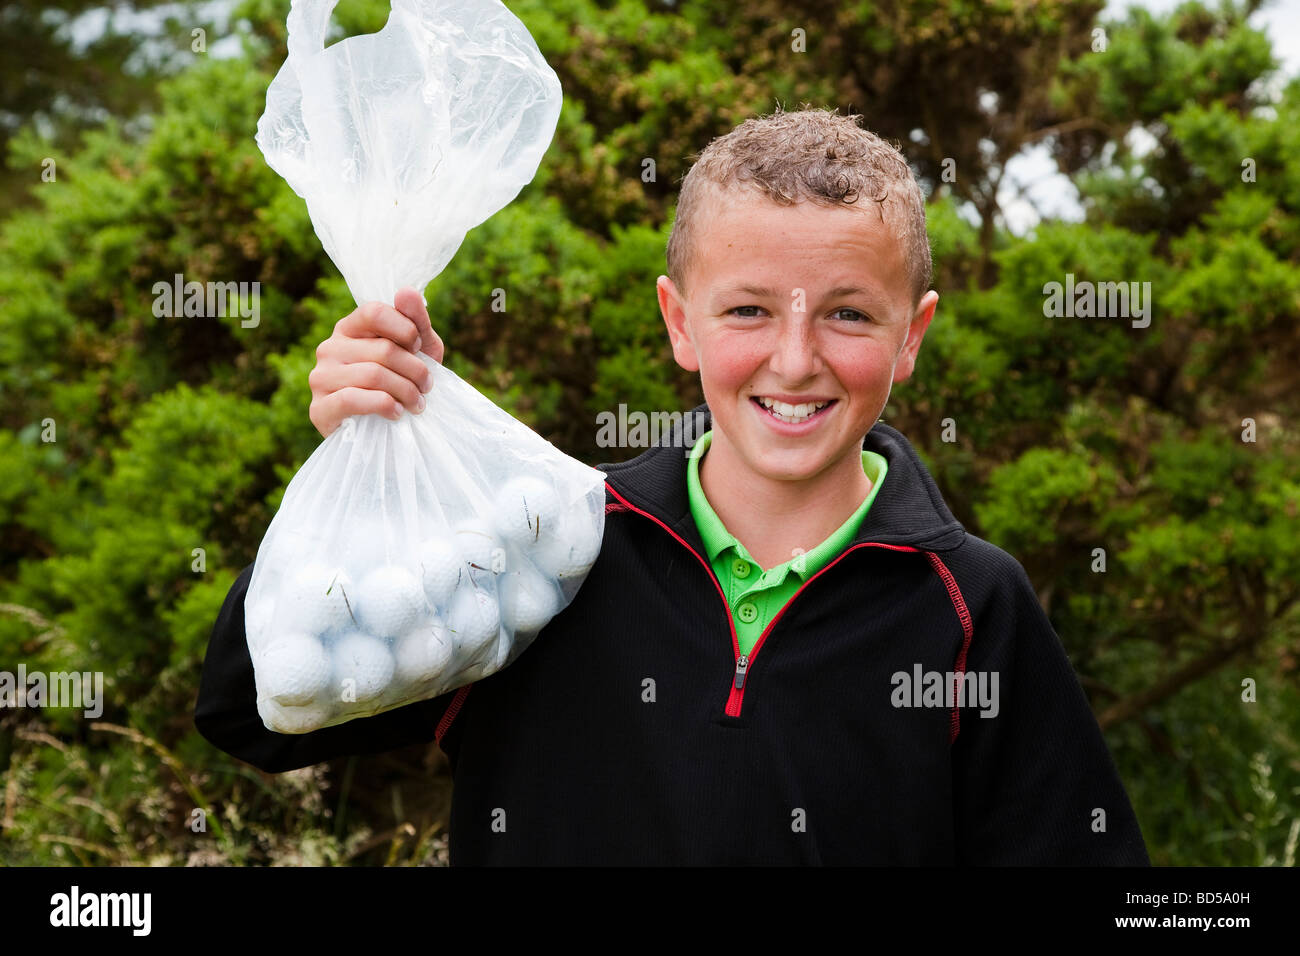 Young boy collecting golf balls on a golf course - Stock Image